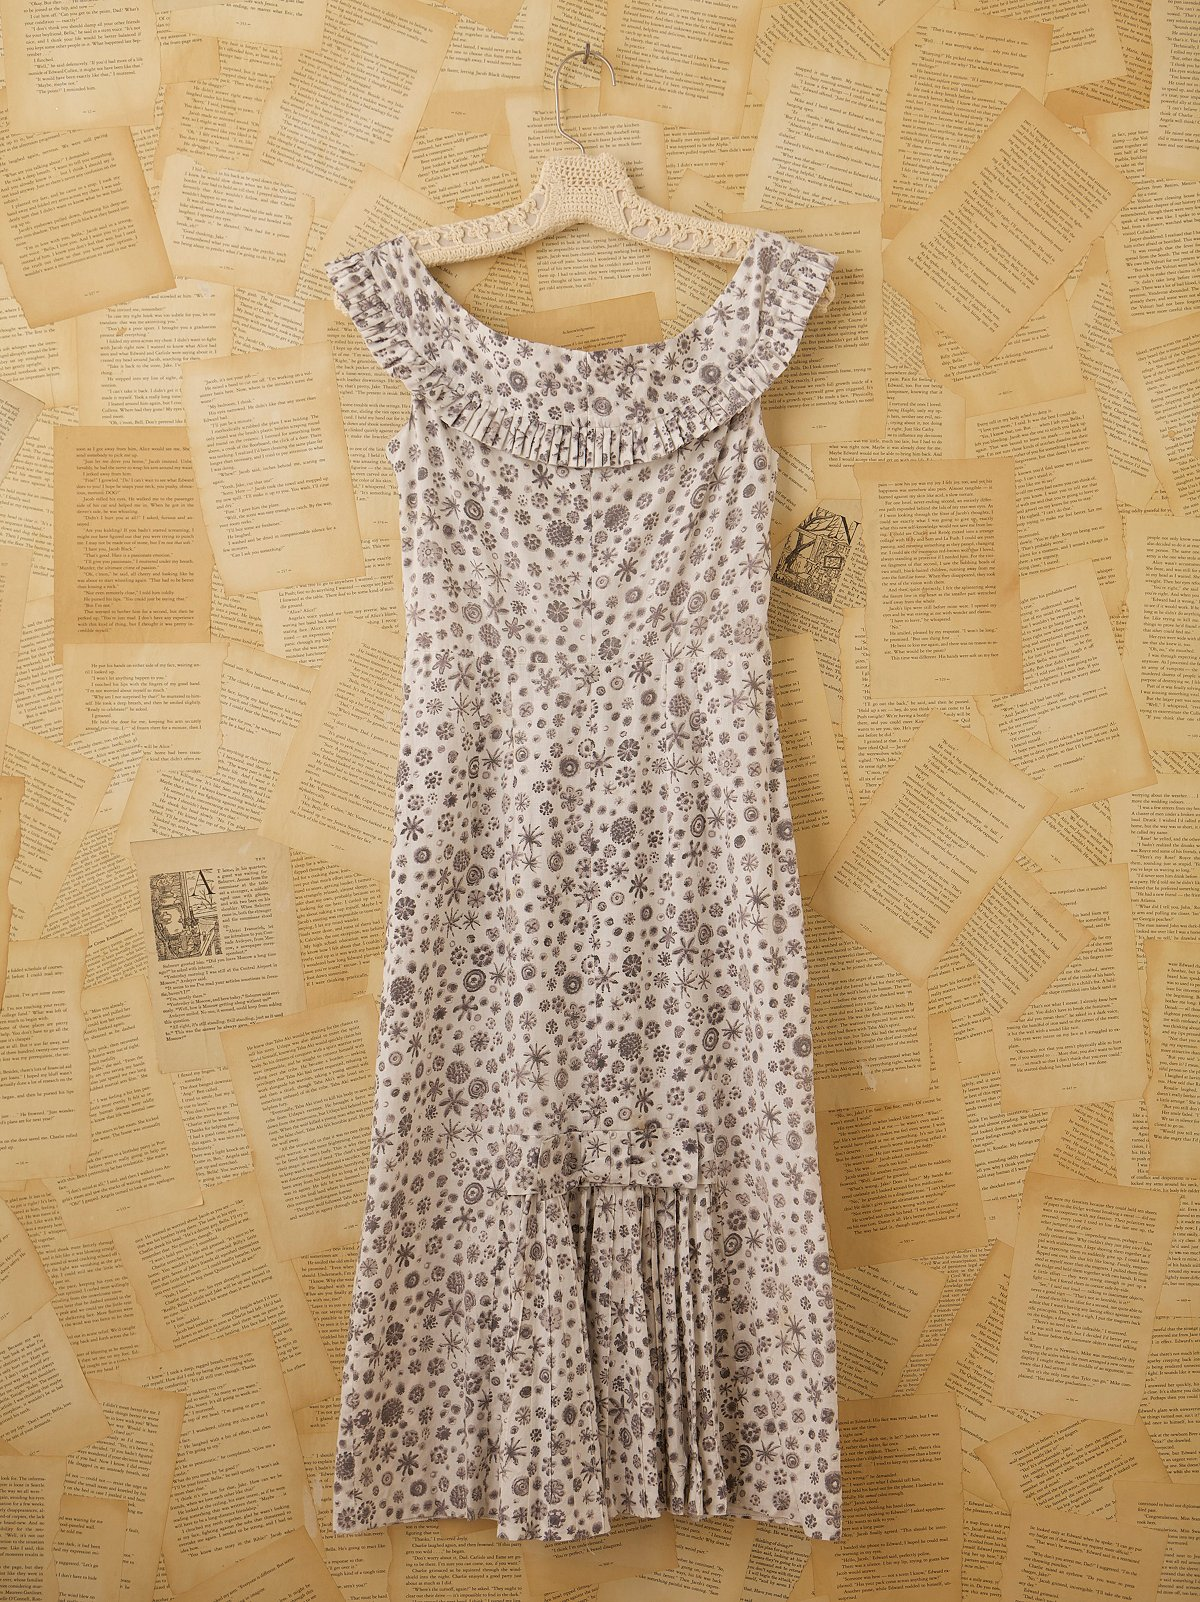 Vintage Ruffled Collar Dress